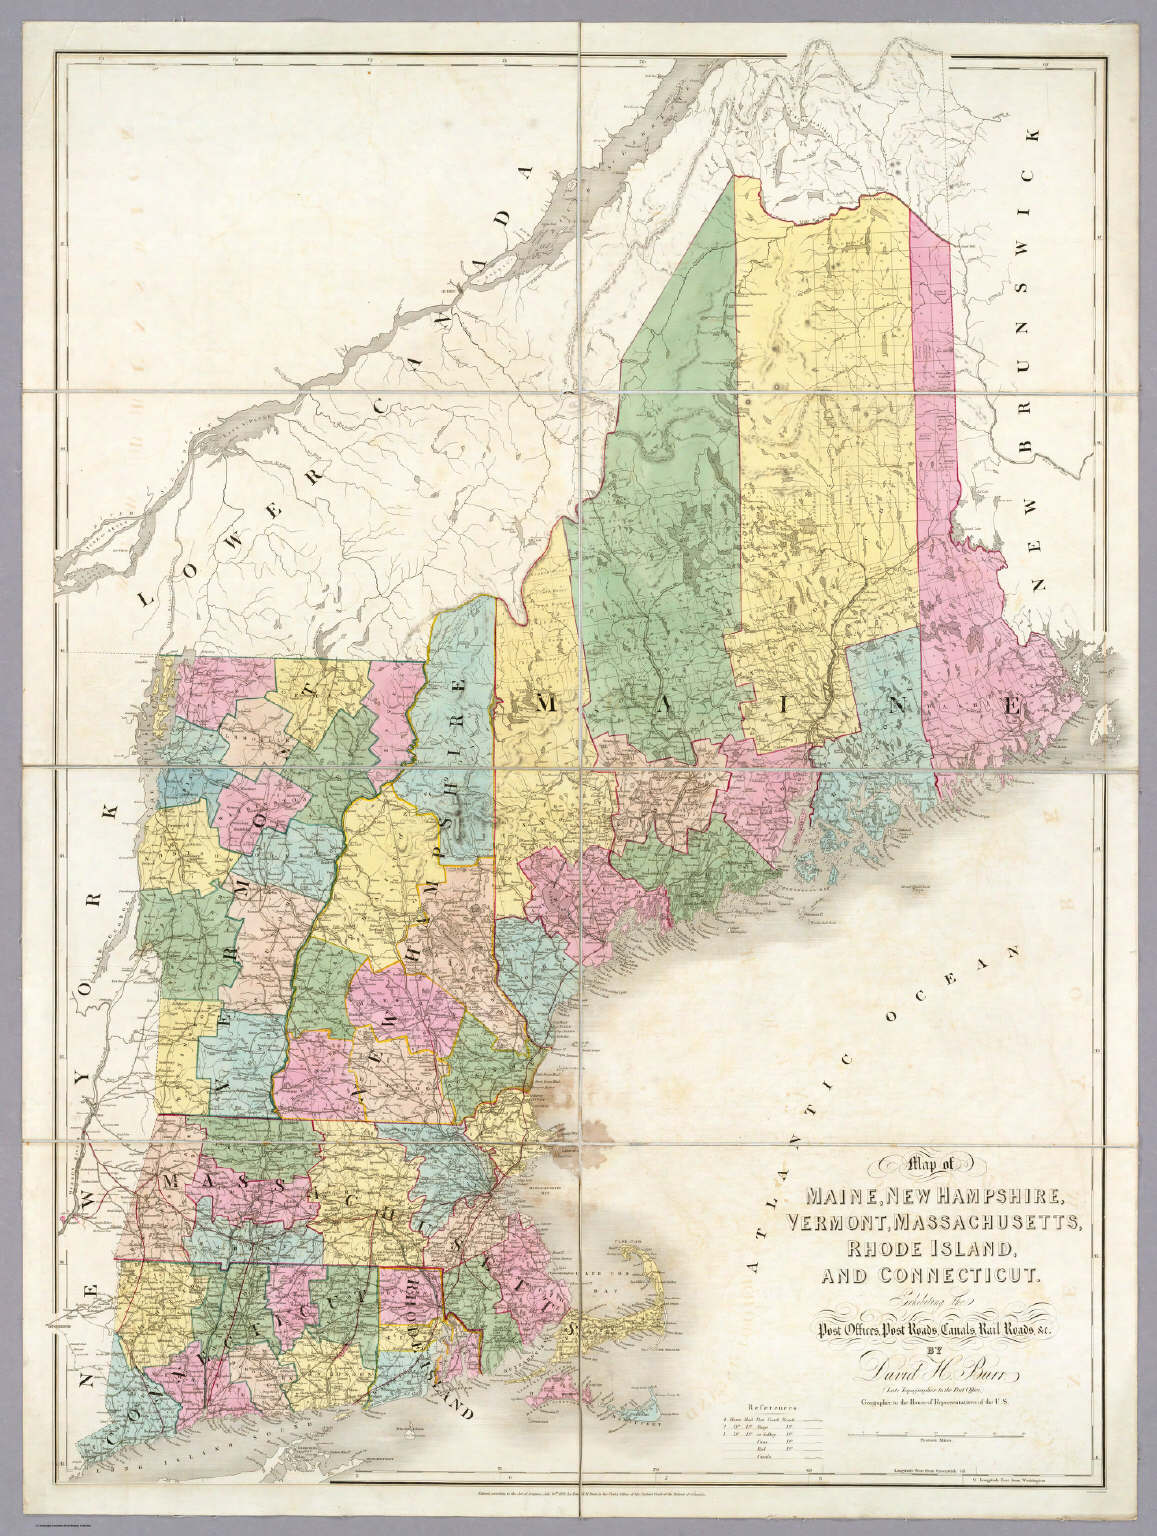 Map Of Maine And New Hampshire Map of Maine, New Hampshire, Vermont, Massachusetts, Rhode Island